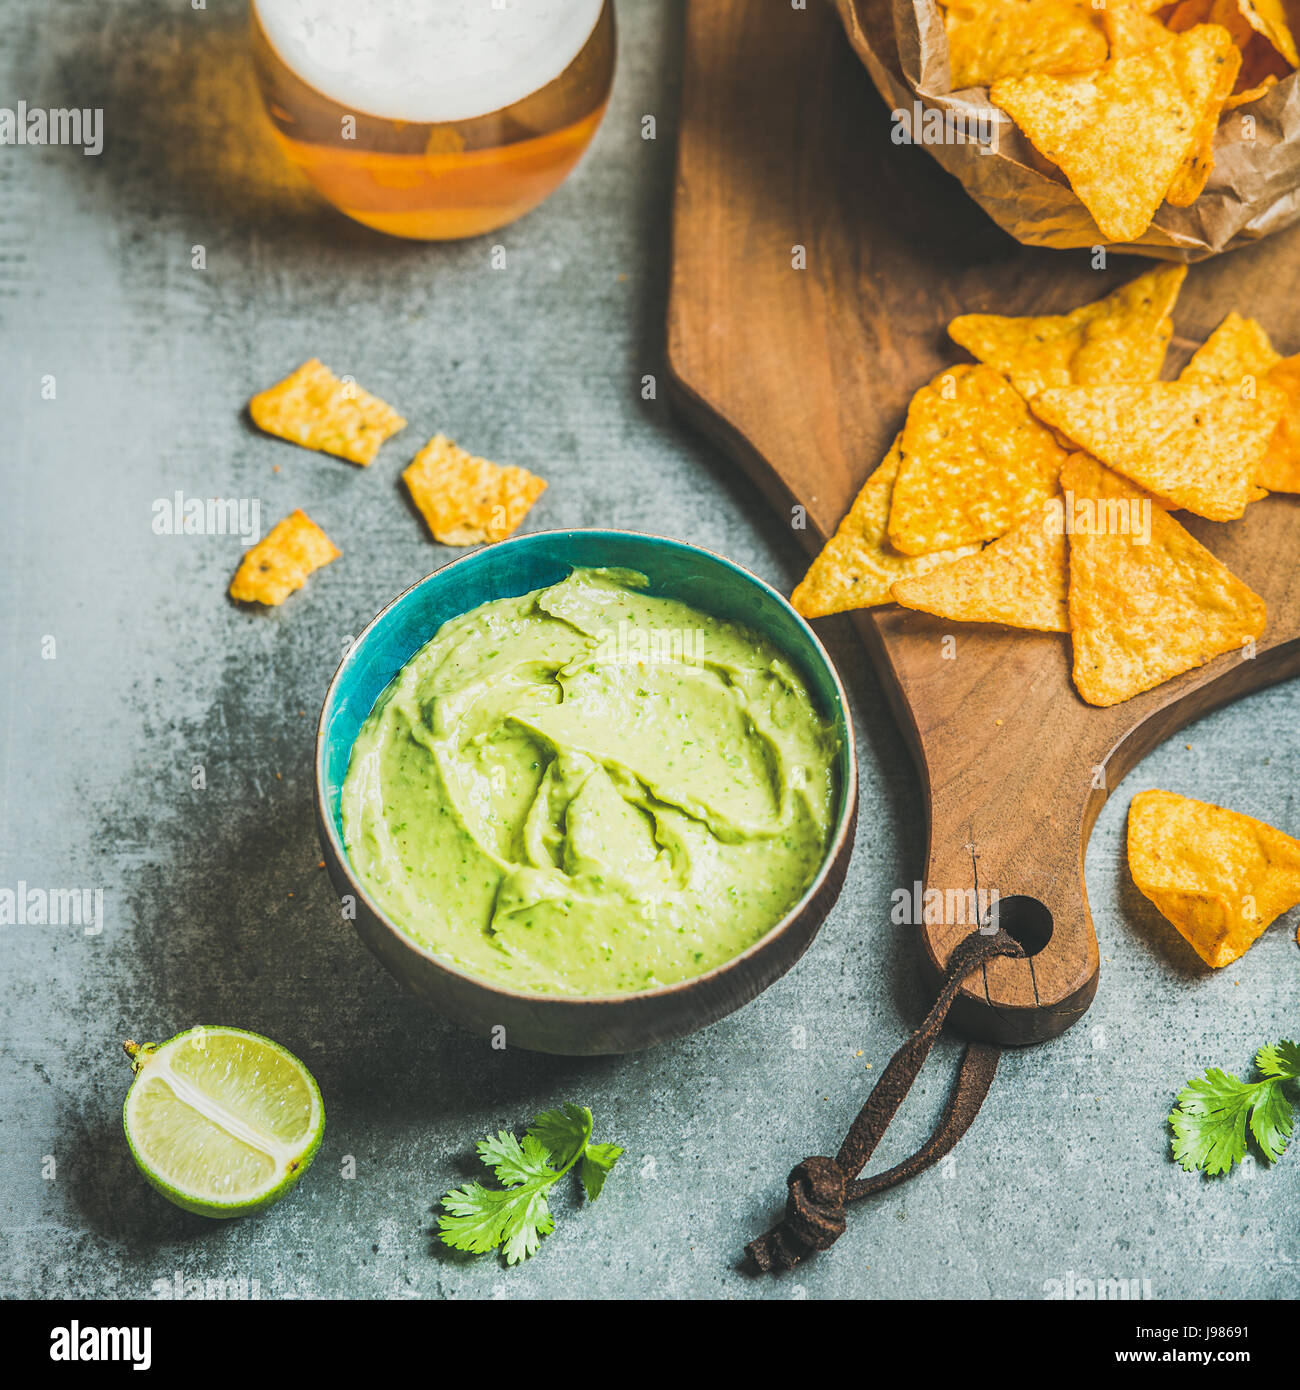 Mexican corn chips, fresh guacamole sauce and beer, square crop - Stock Image